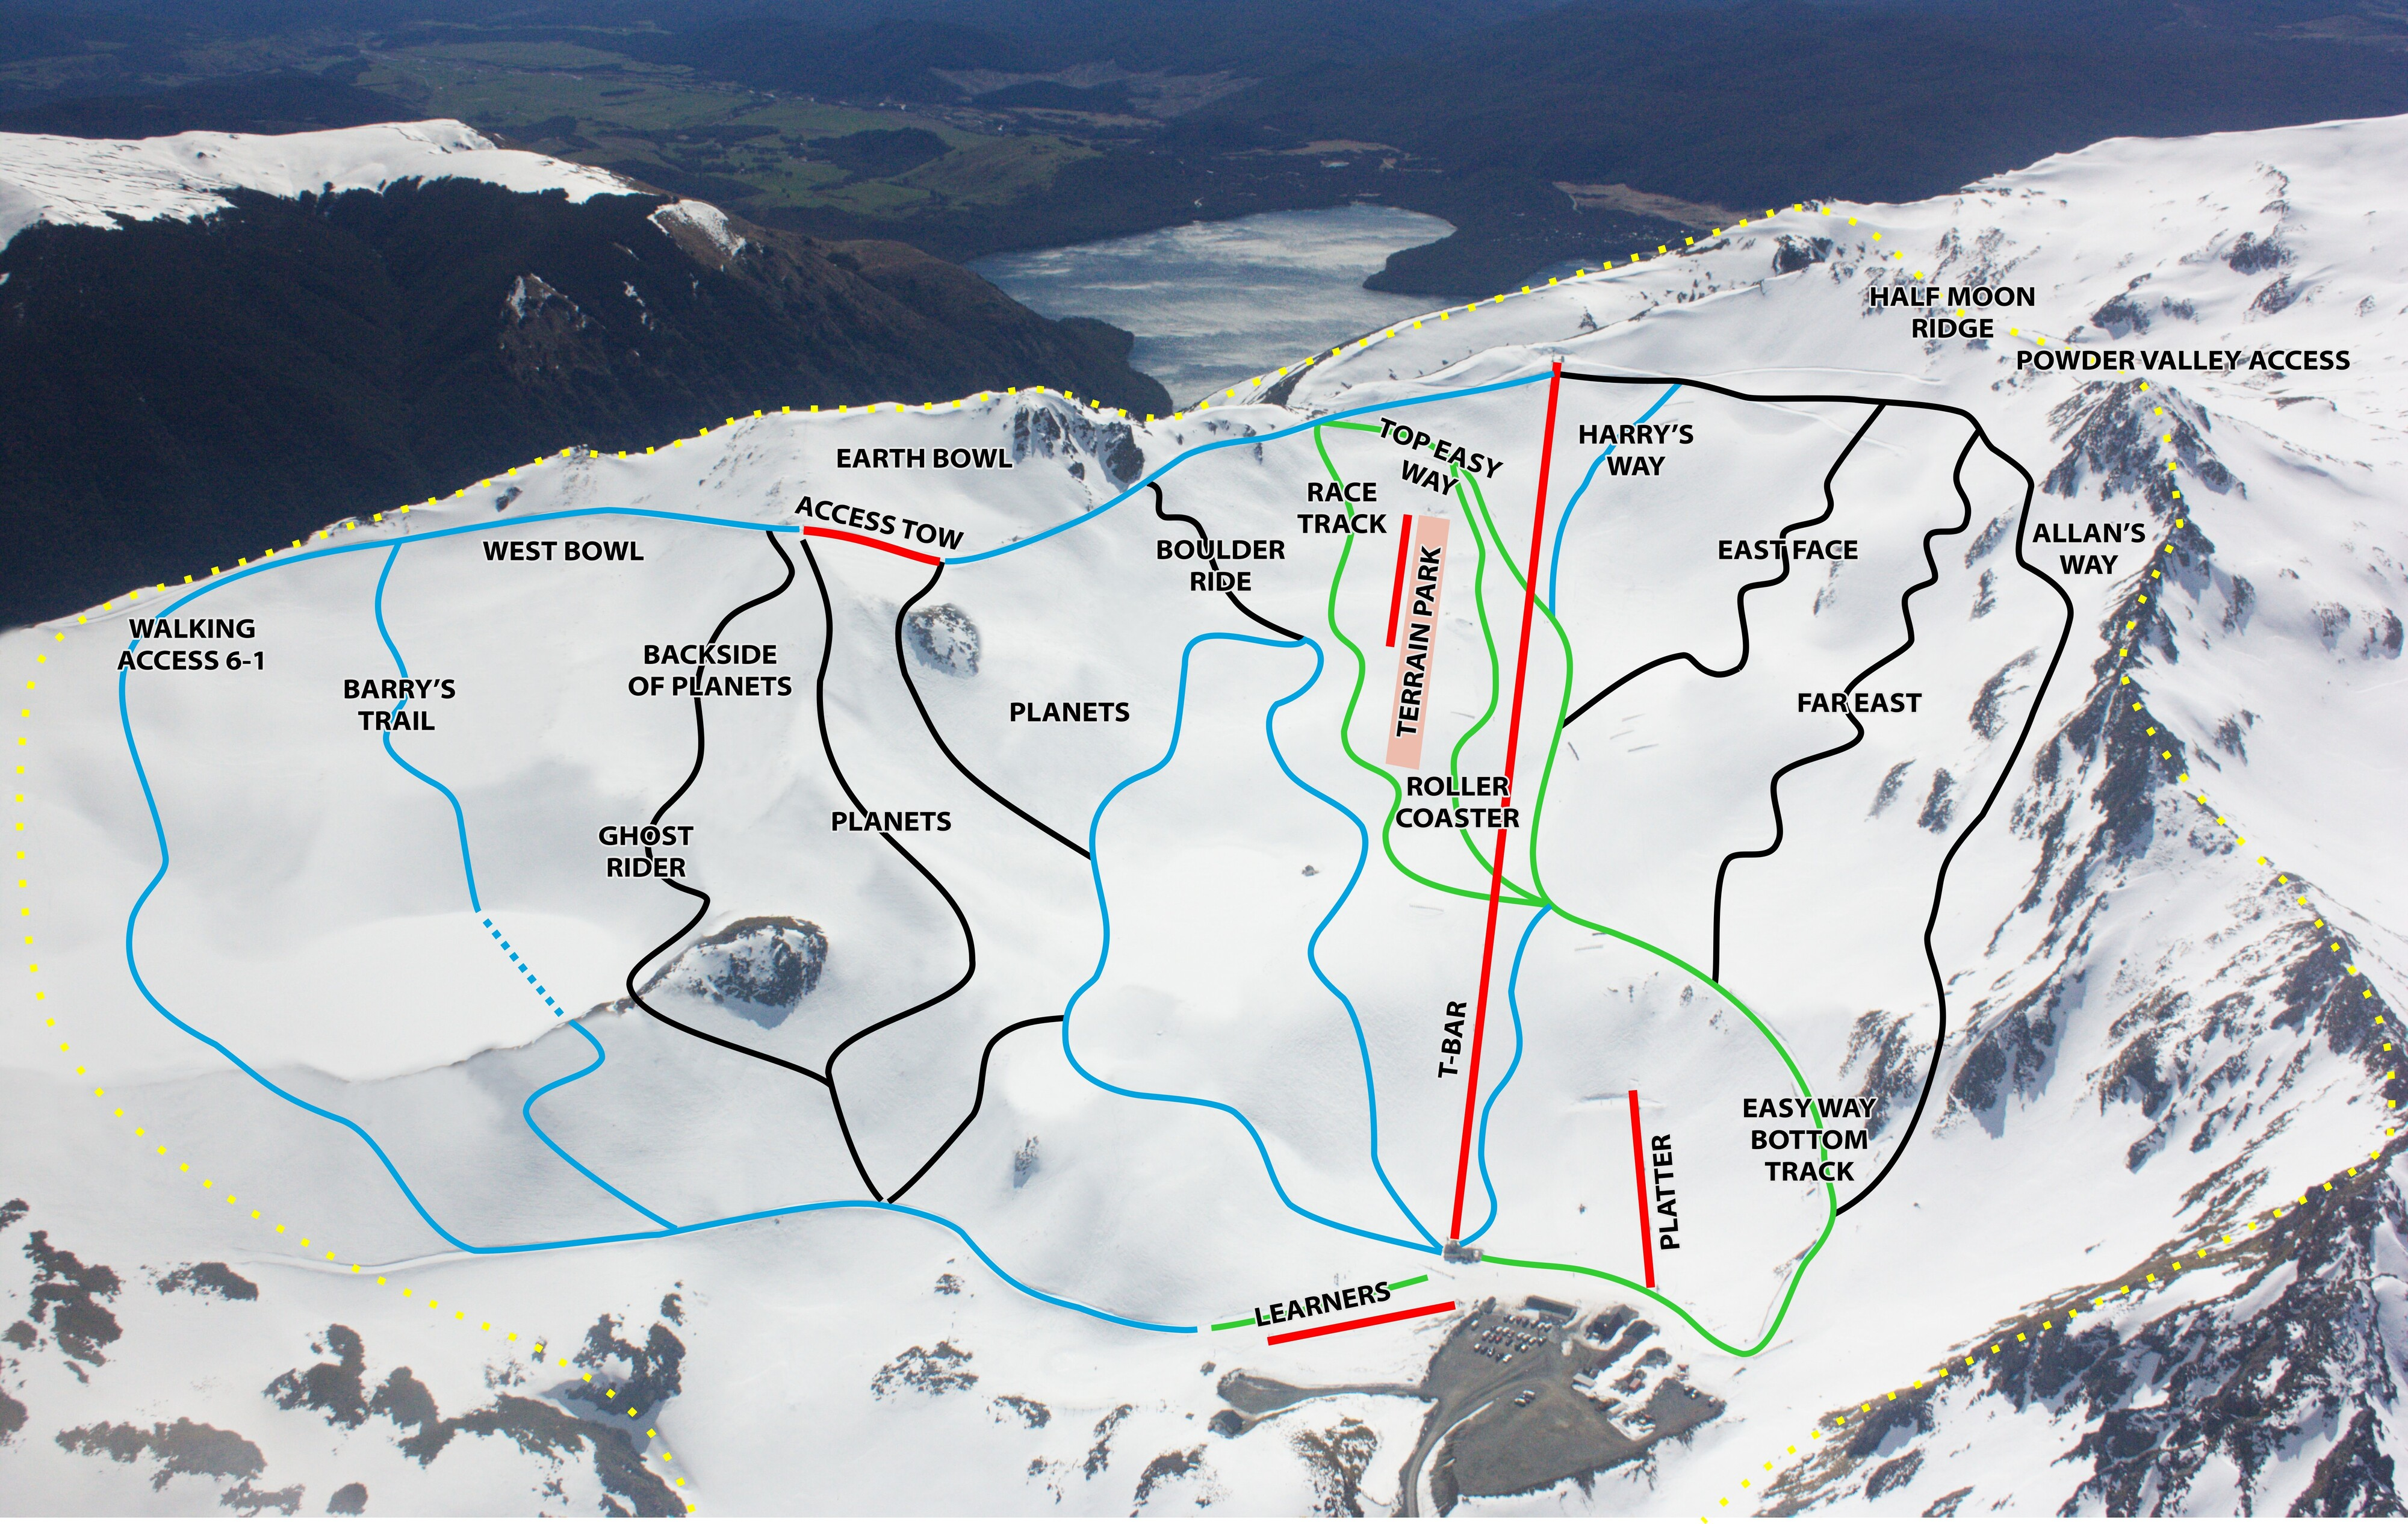 Rainbow Piste / Trail Map